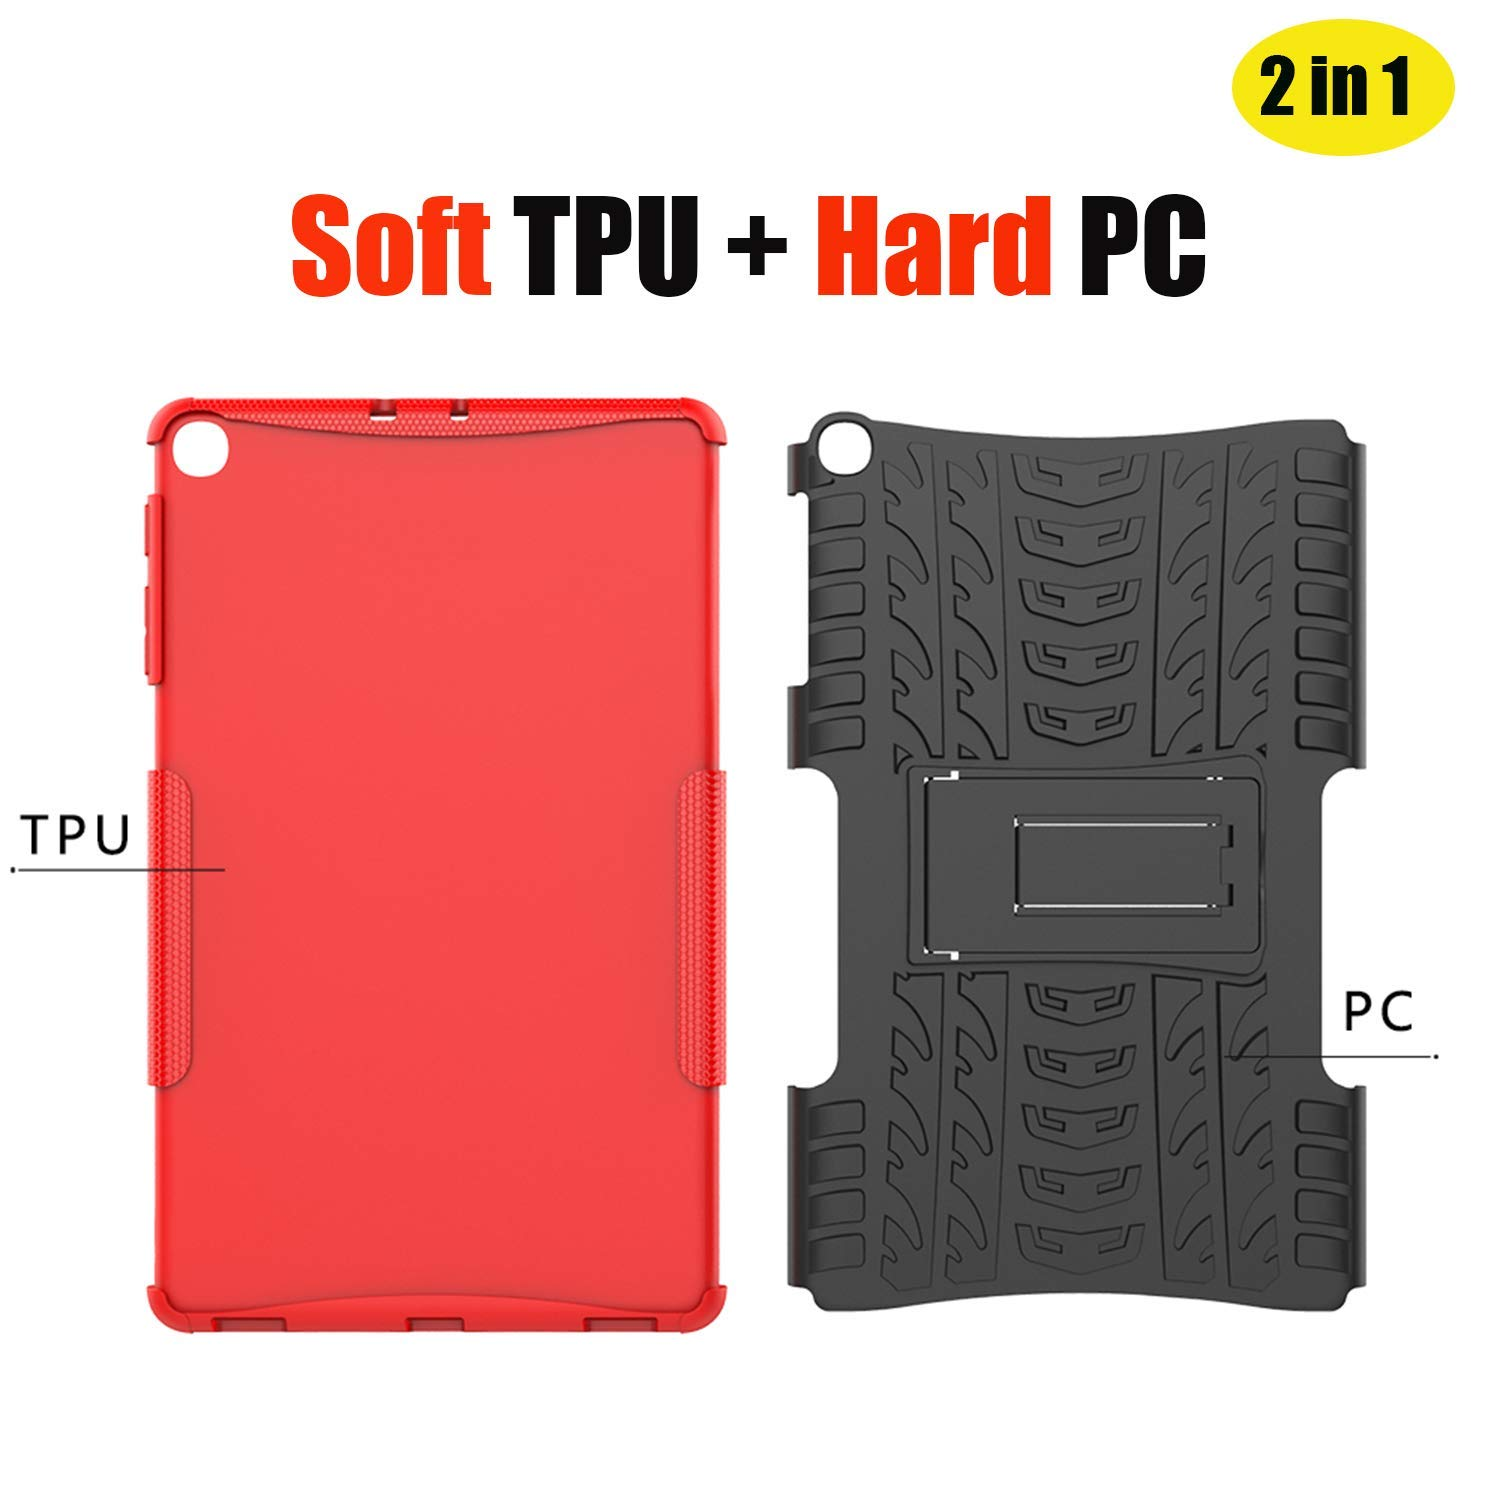 HoYiXi Samsung Galaxy Tab A 10.1 2019 Tablet Case Shockproof Tough Heavy-Duty Armor Case with Kickstand Anti-Drop Double Protective Cover for Samsung Galaxy Tab A 10.1 T510//T515 2019 Orange